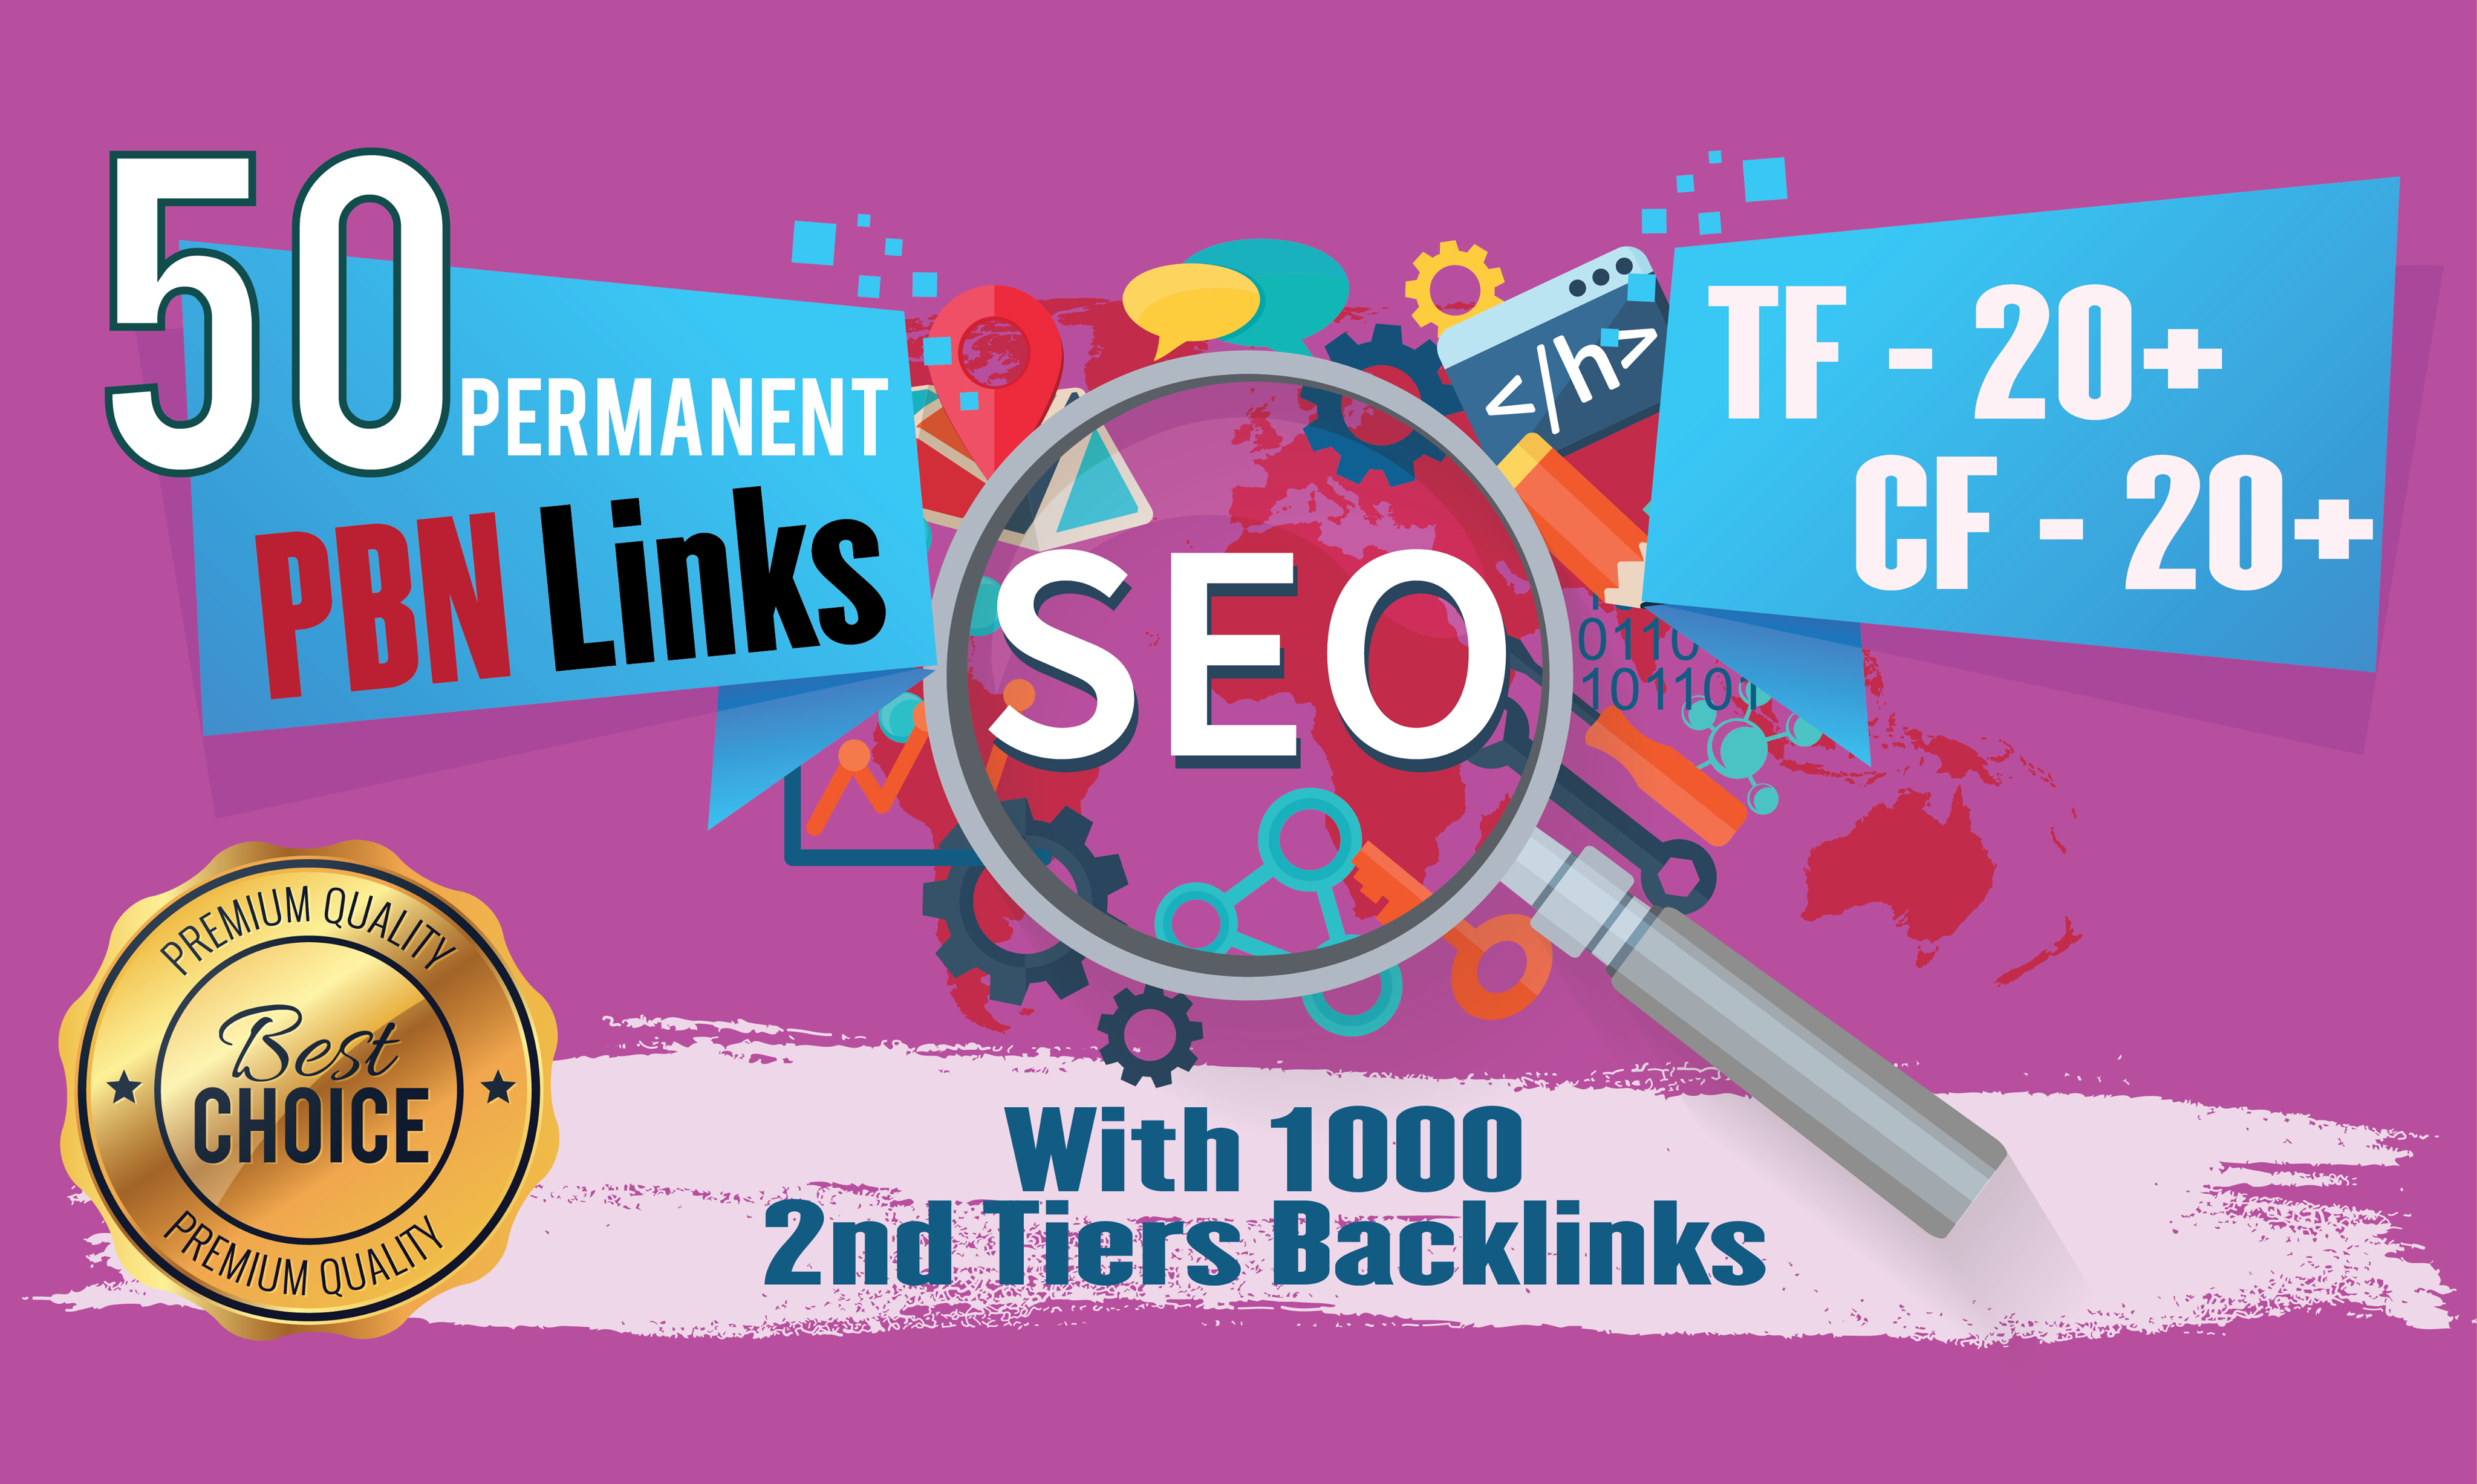 2020 Strong 50 Homepage Permanent PBN With 1000 2nd Tiers Backlinks